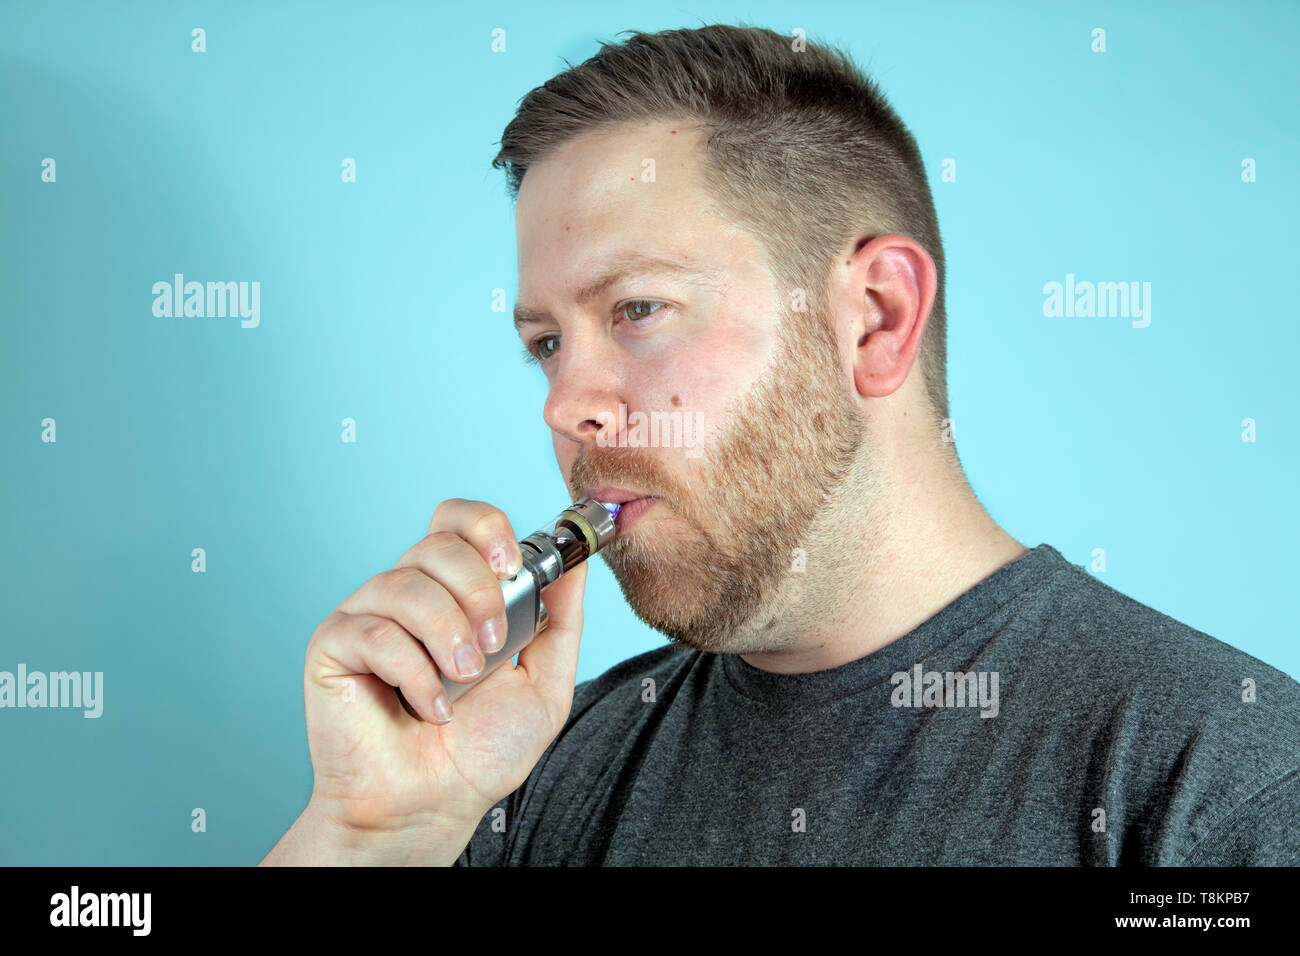 Young man vaping smoking an e-cigarette, he holds the vaporizer in his hand - Stock Image